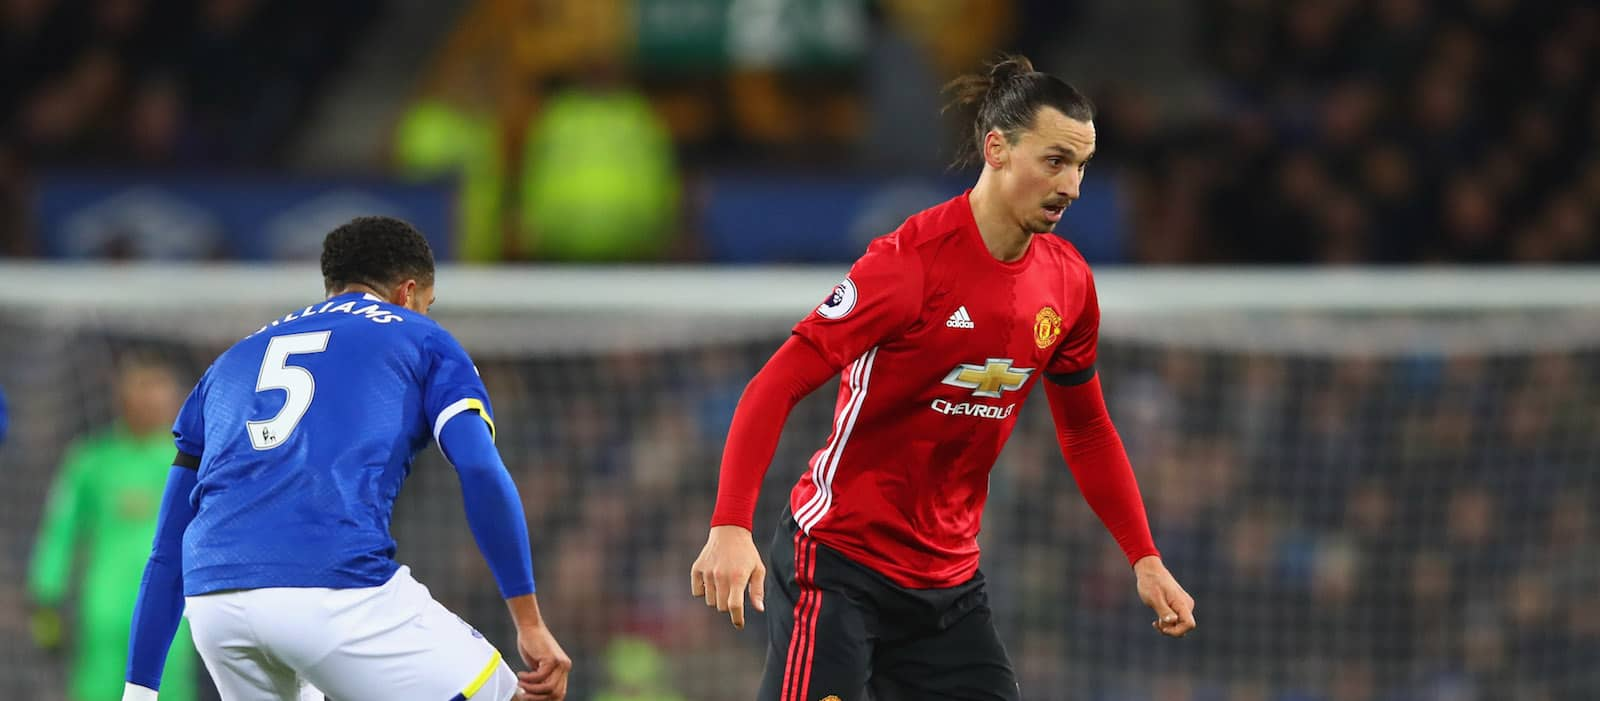 Jose Mourinho expects Zlatan Ibrahimovic to be fit for Liverpool game